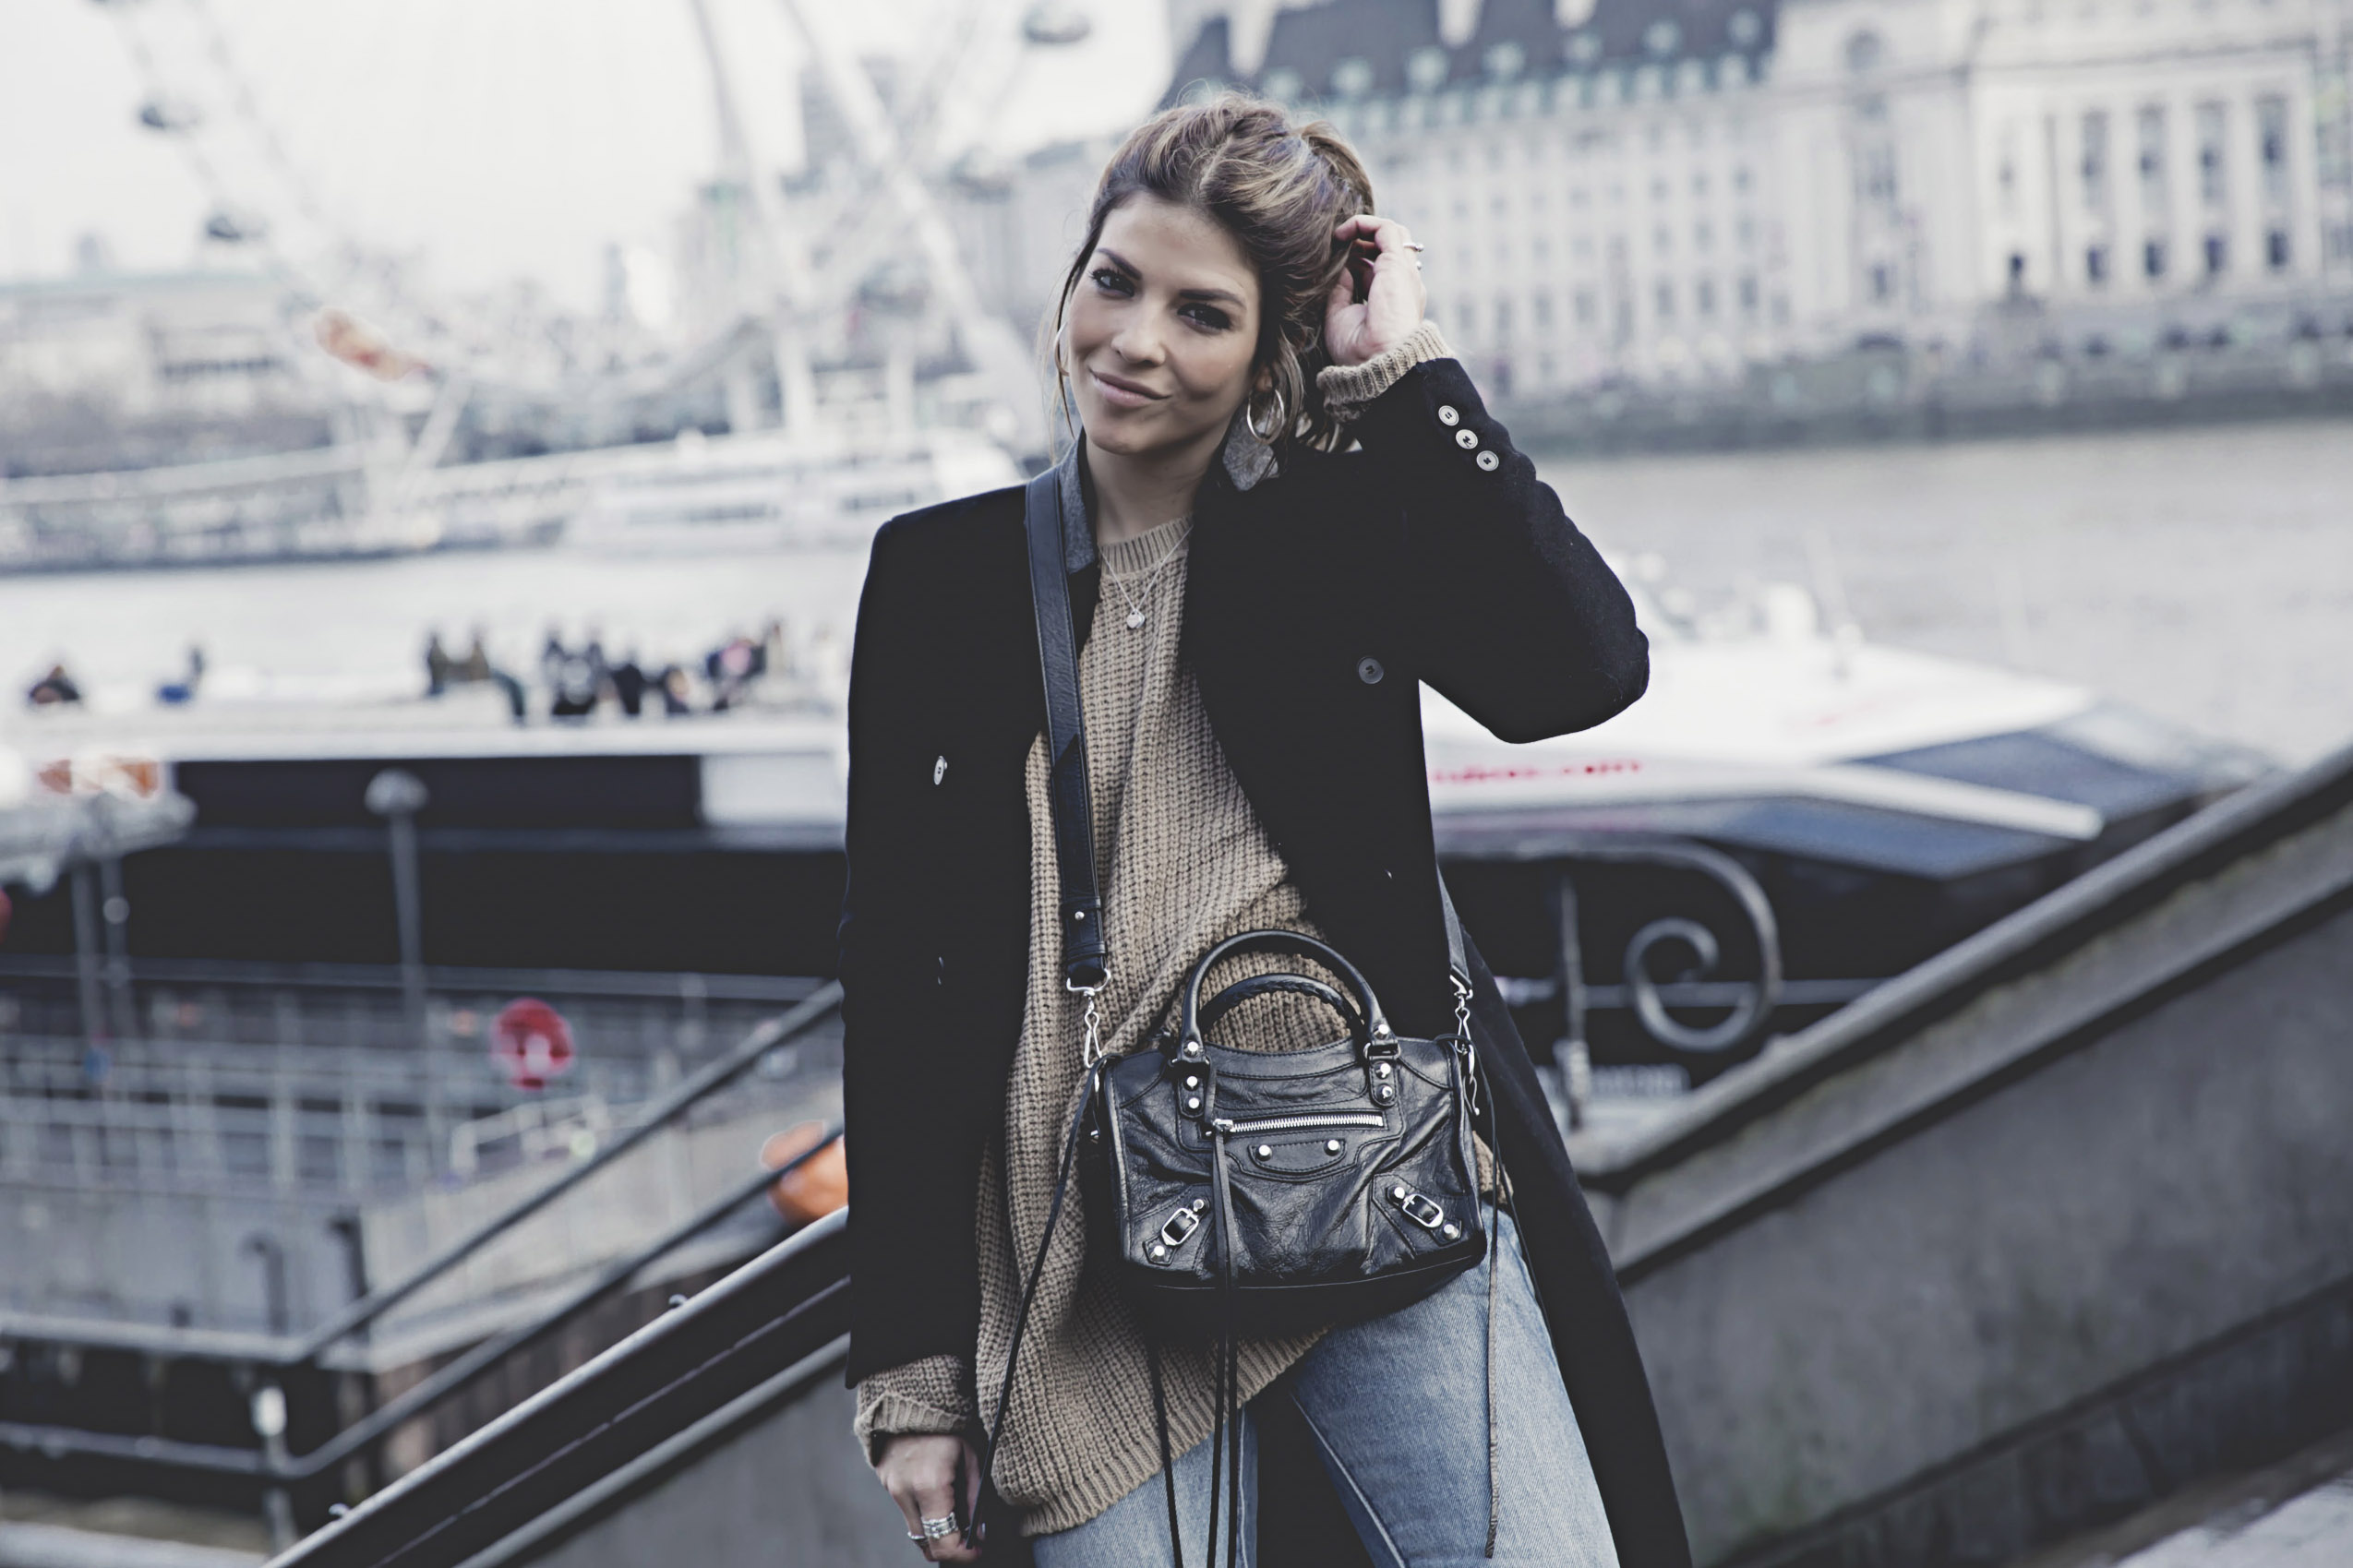 trendy-taste-london-londres-blogger-moschino-zara-jeans-rotos-vaqueros-denim-punto-oversize-8lo